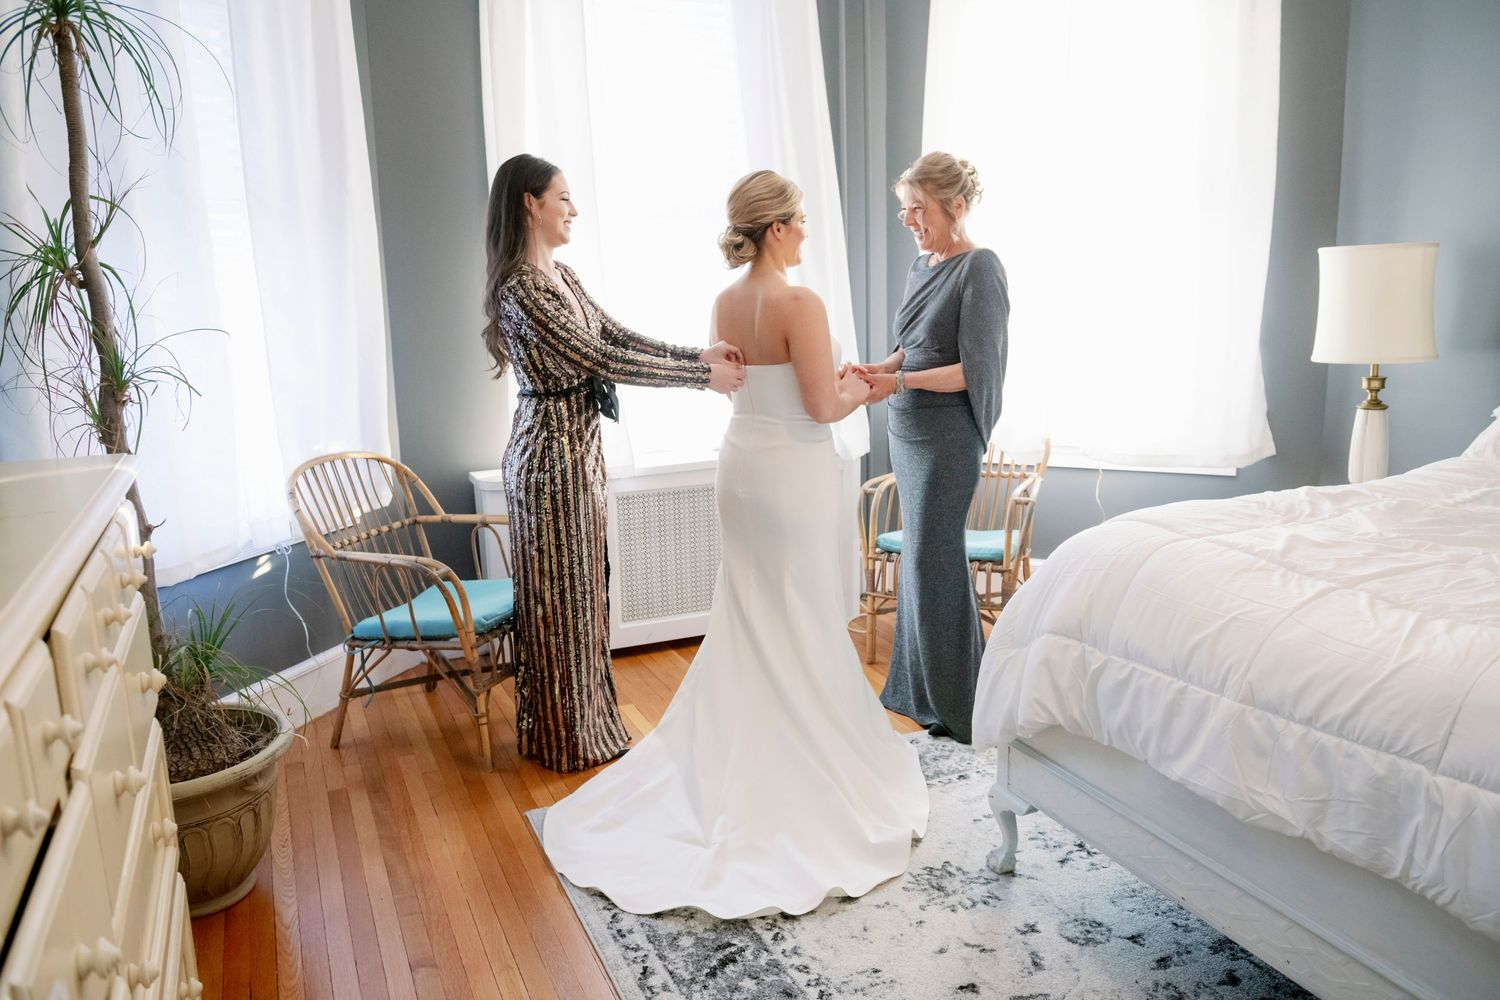 bride getting dressed with help from sister and mom